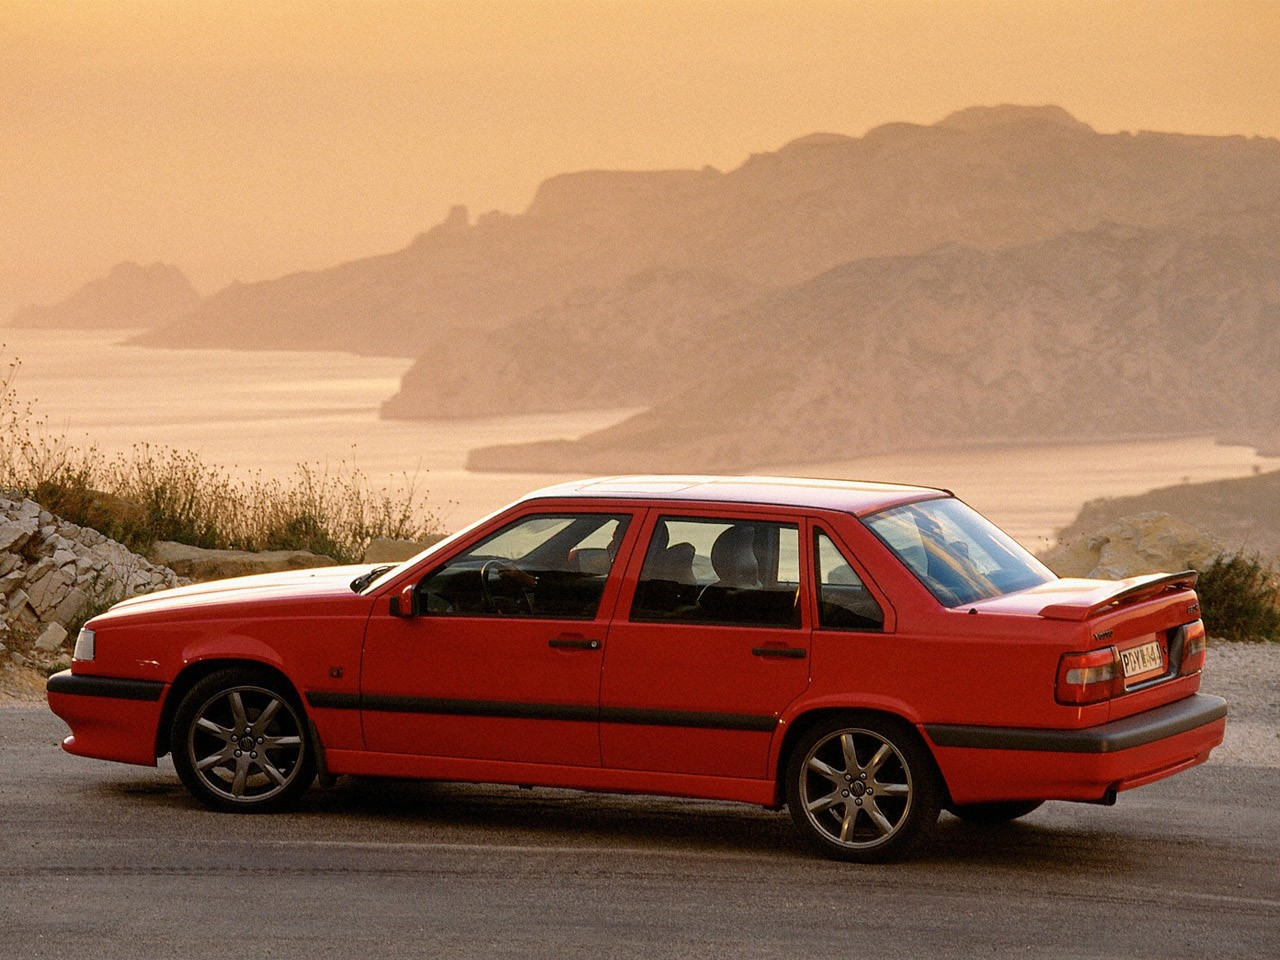 drives awd great wagon enthusiast collectable rare runs watch and for sale volvo